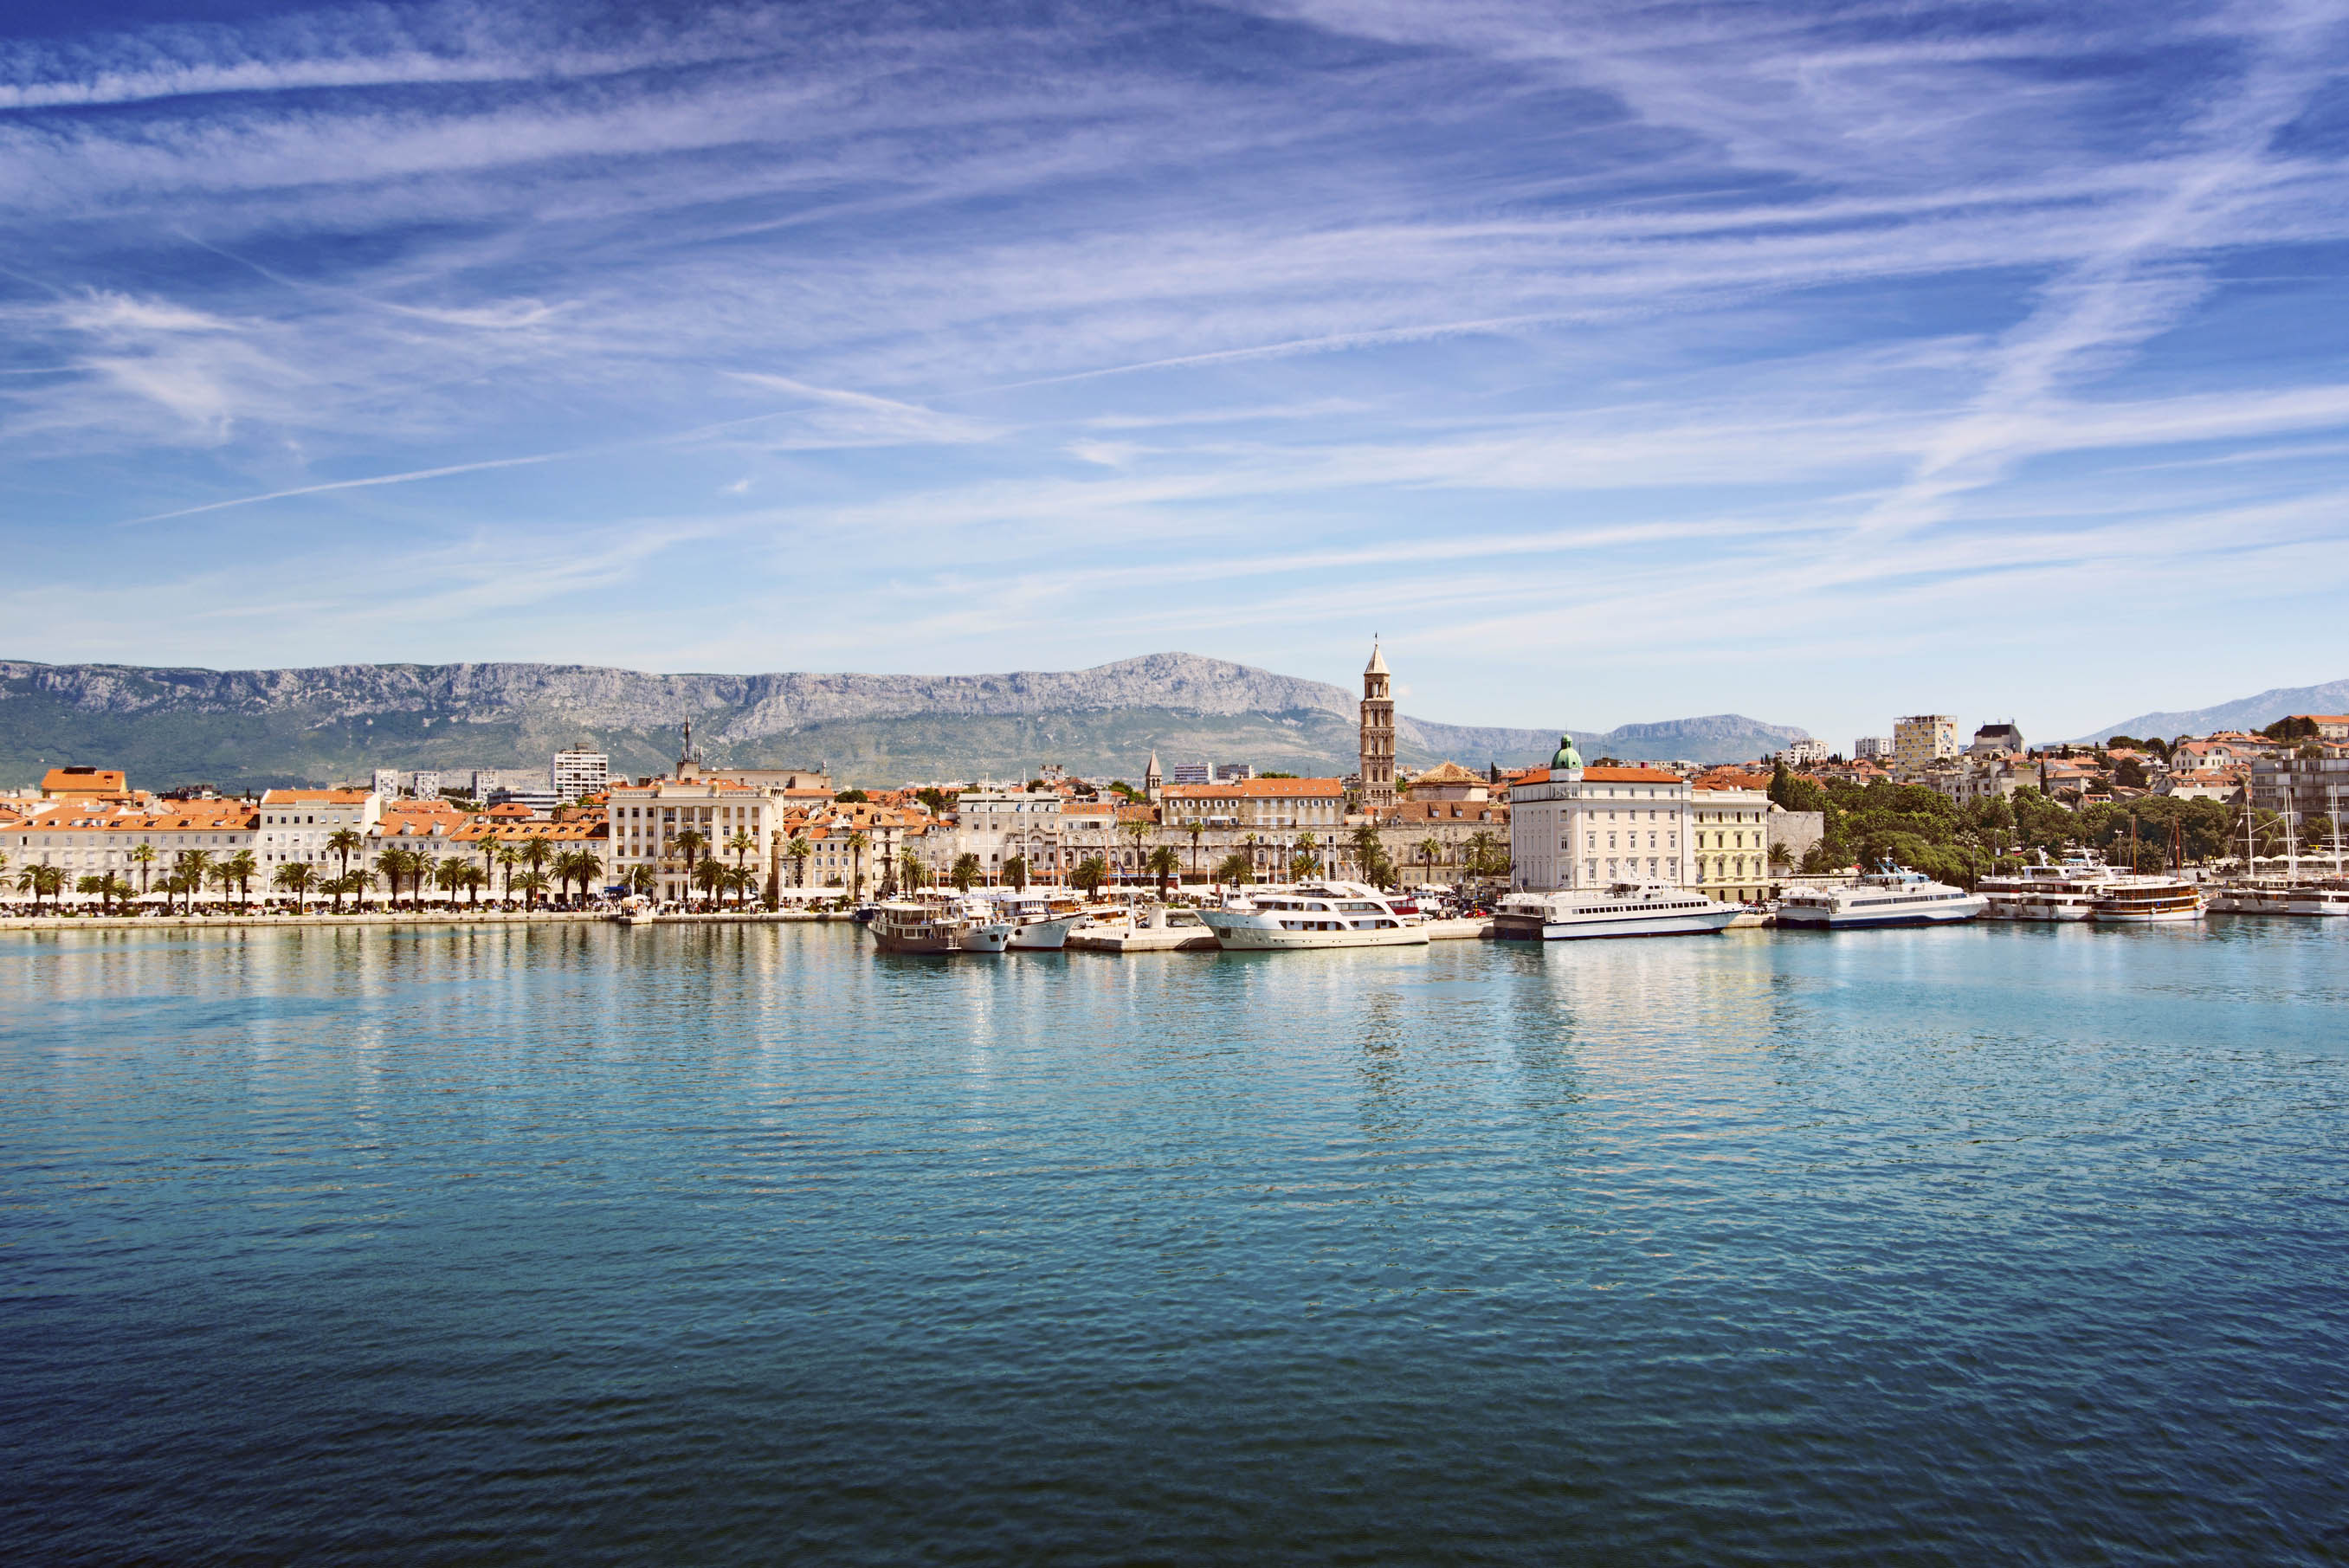 View from the calm sea towards Split and its boats and town buildings